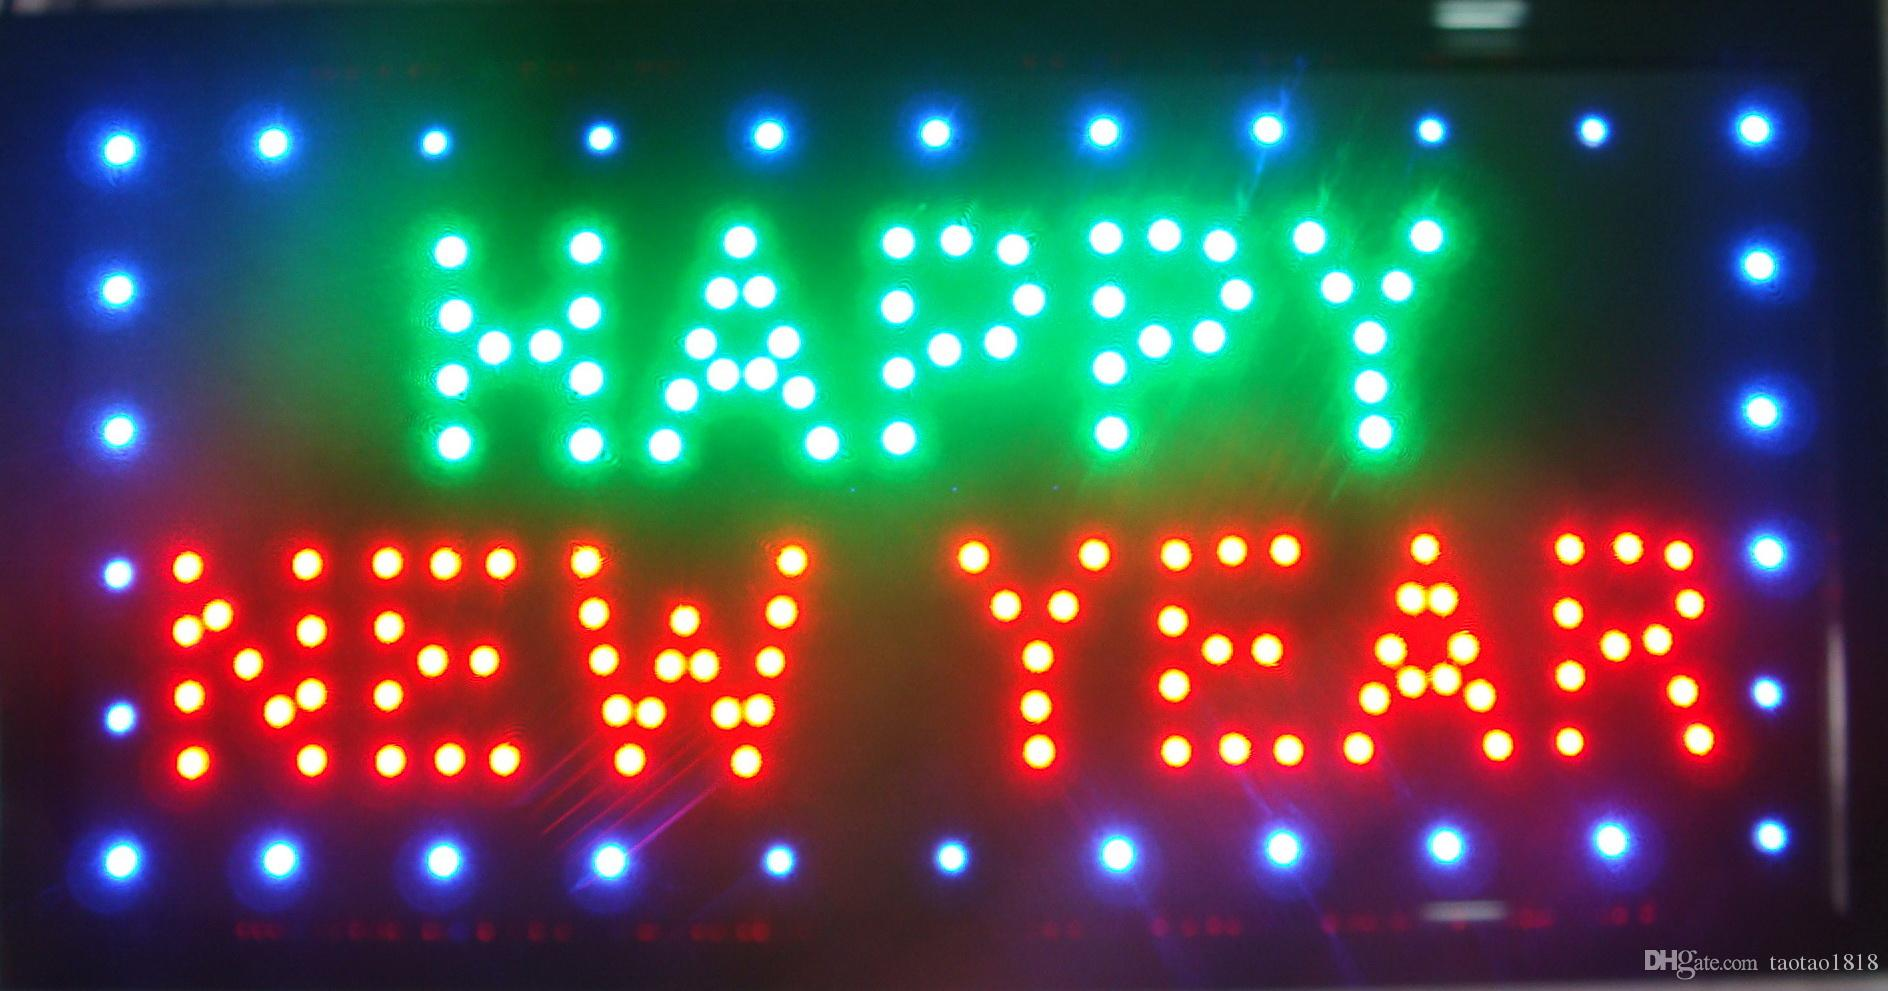 Hot sale Customize Imput signs led neon happy new year sign Customize Imput board indoor size 10*19 inch